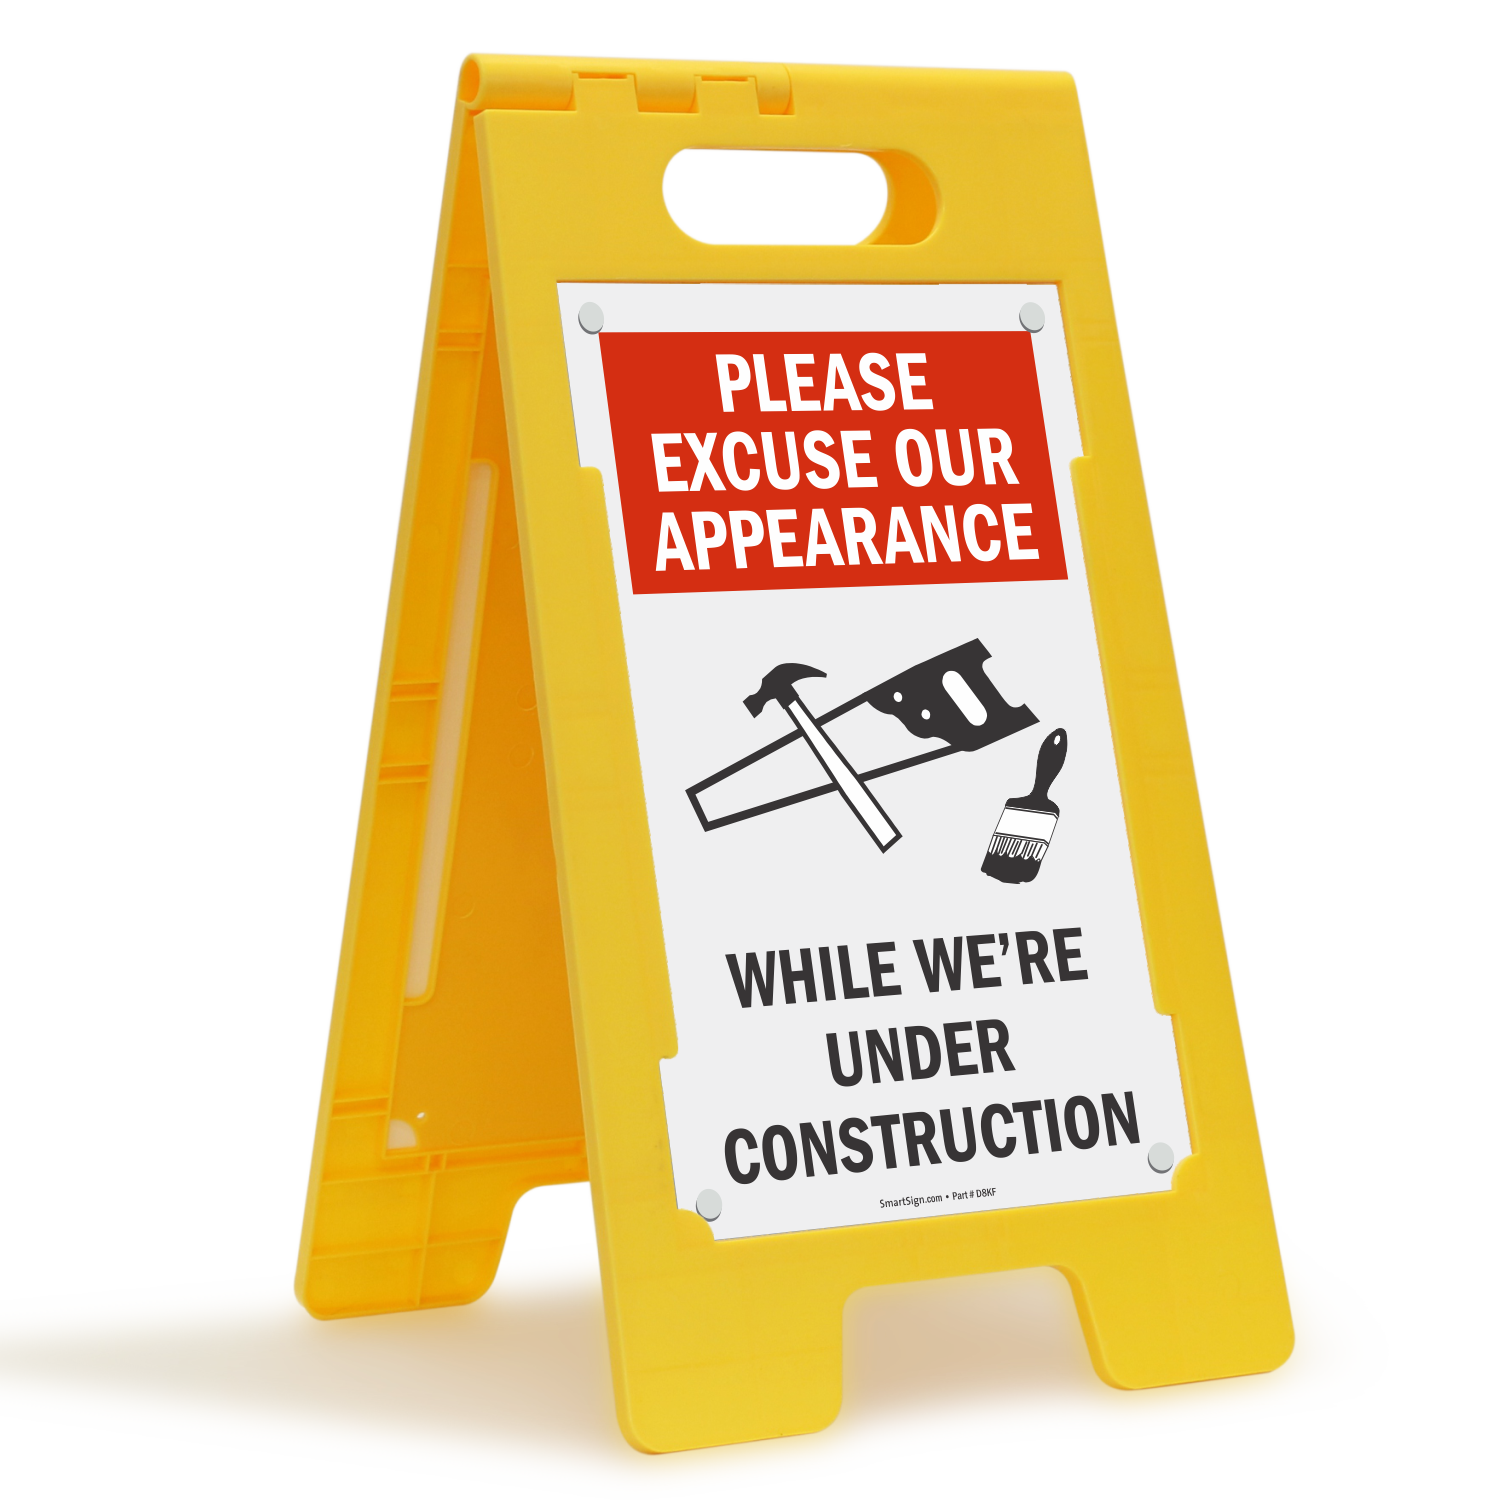 Please Excuse Our Appearance While Under Construction Sign